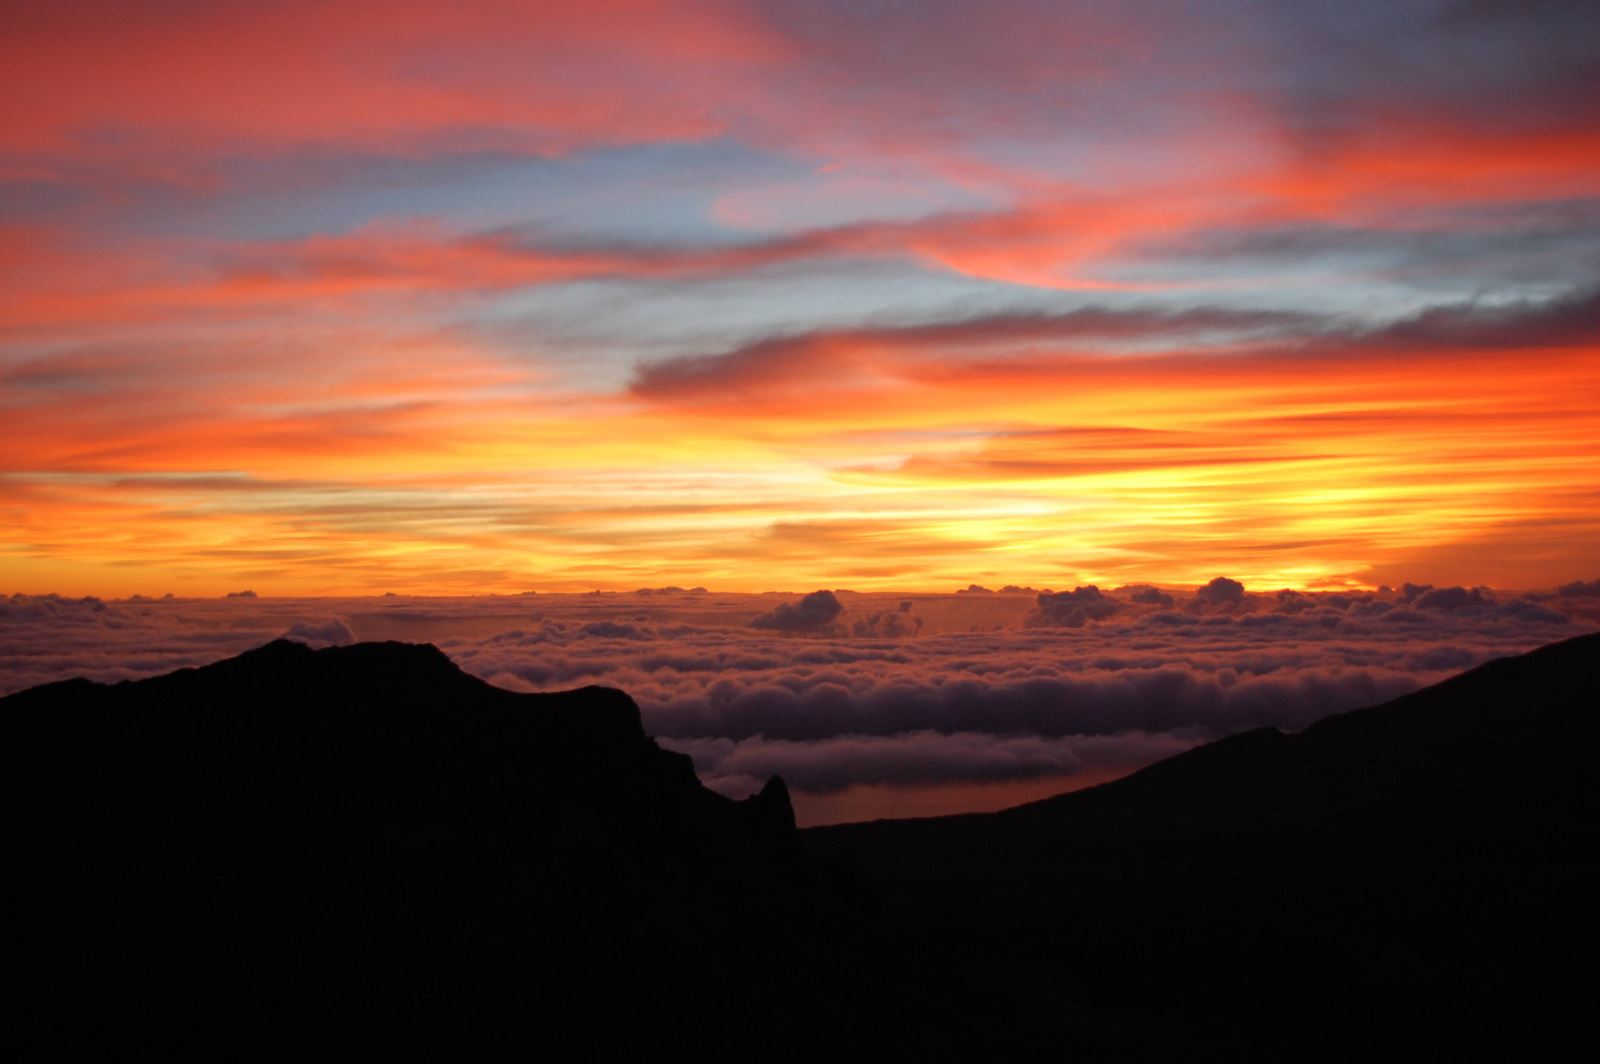 Maui-haleakala-sunrise-hawaii-new-years